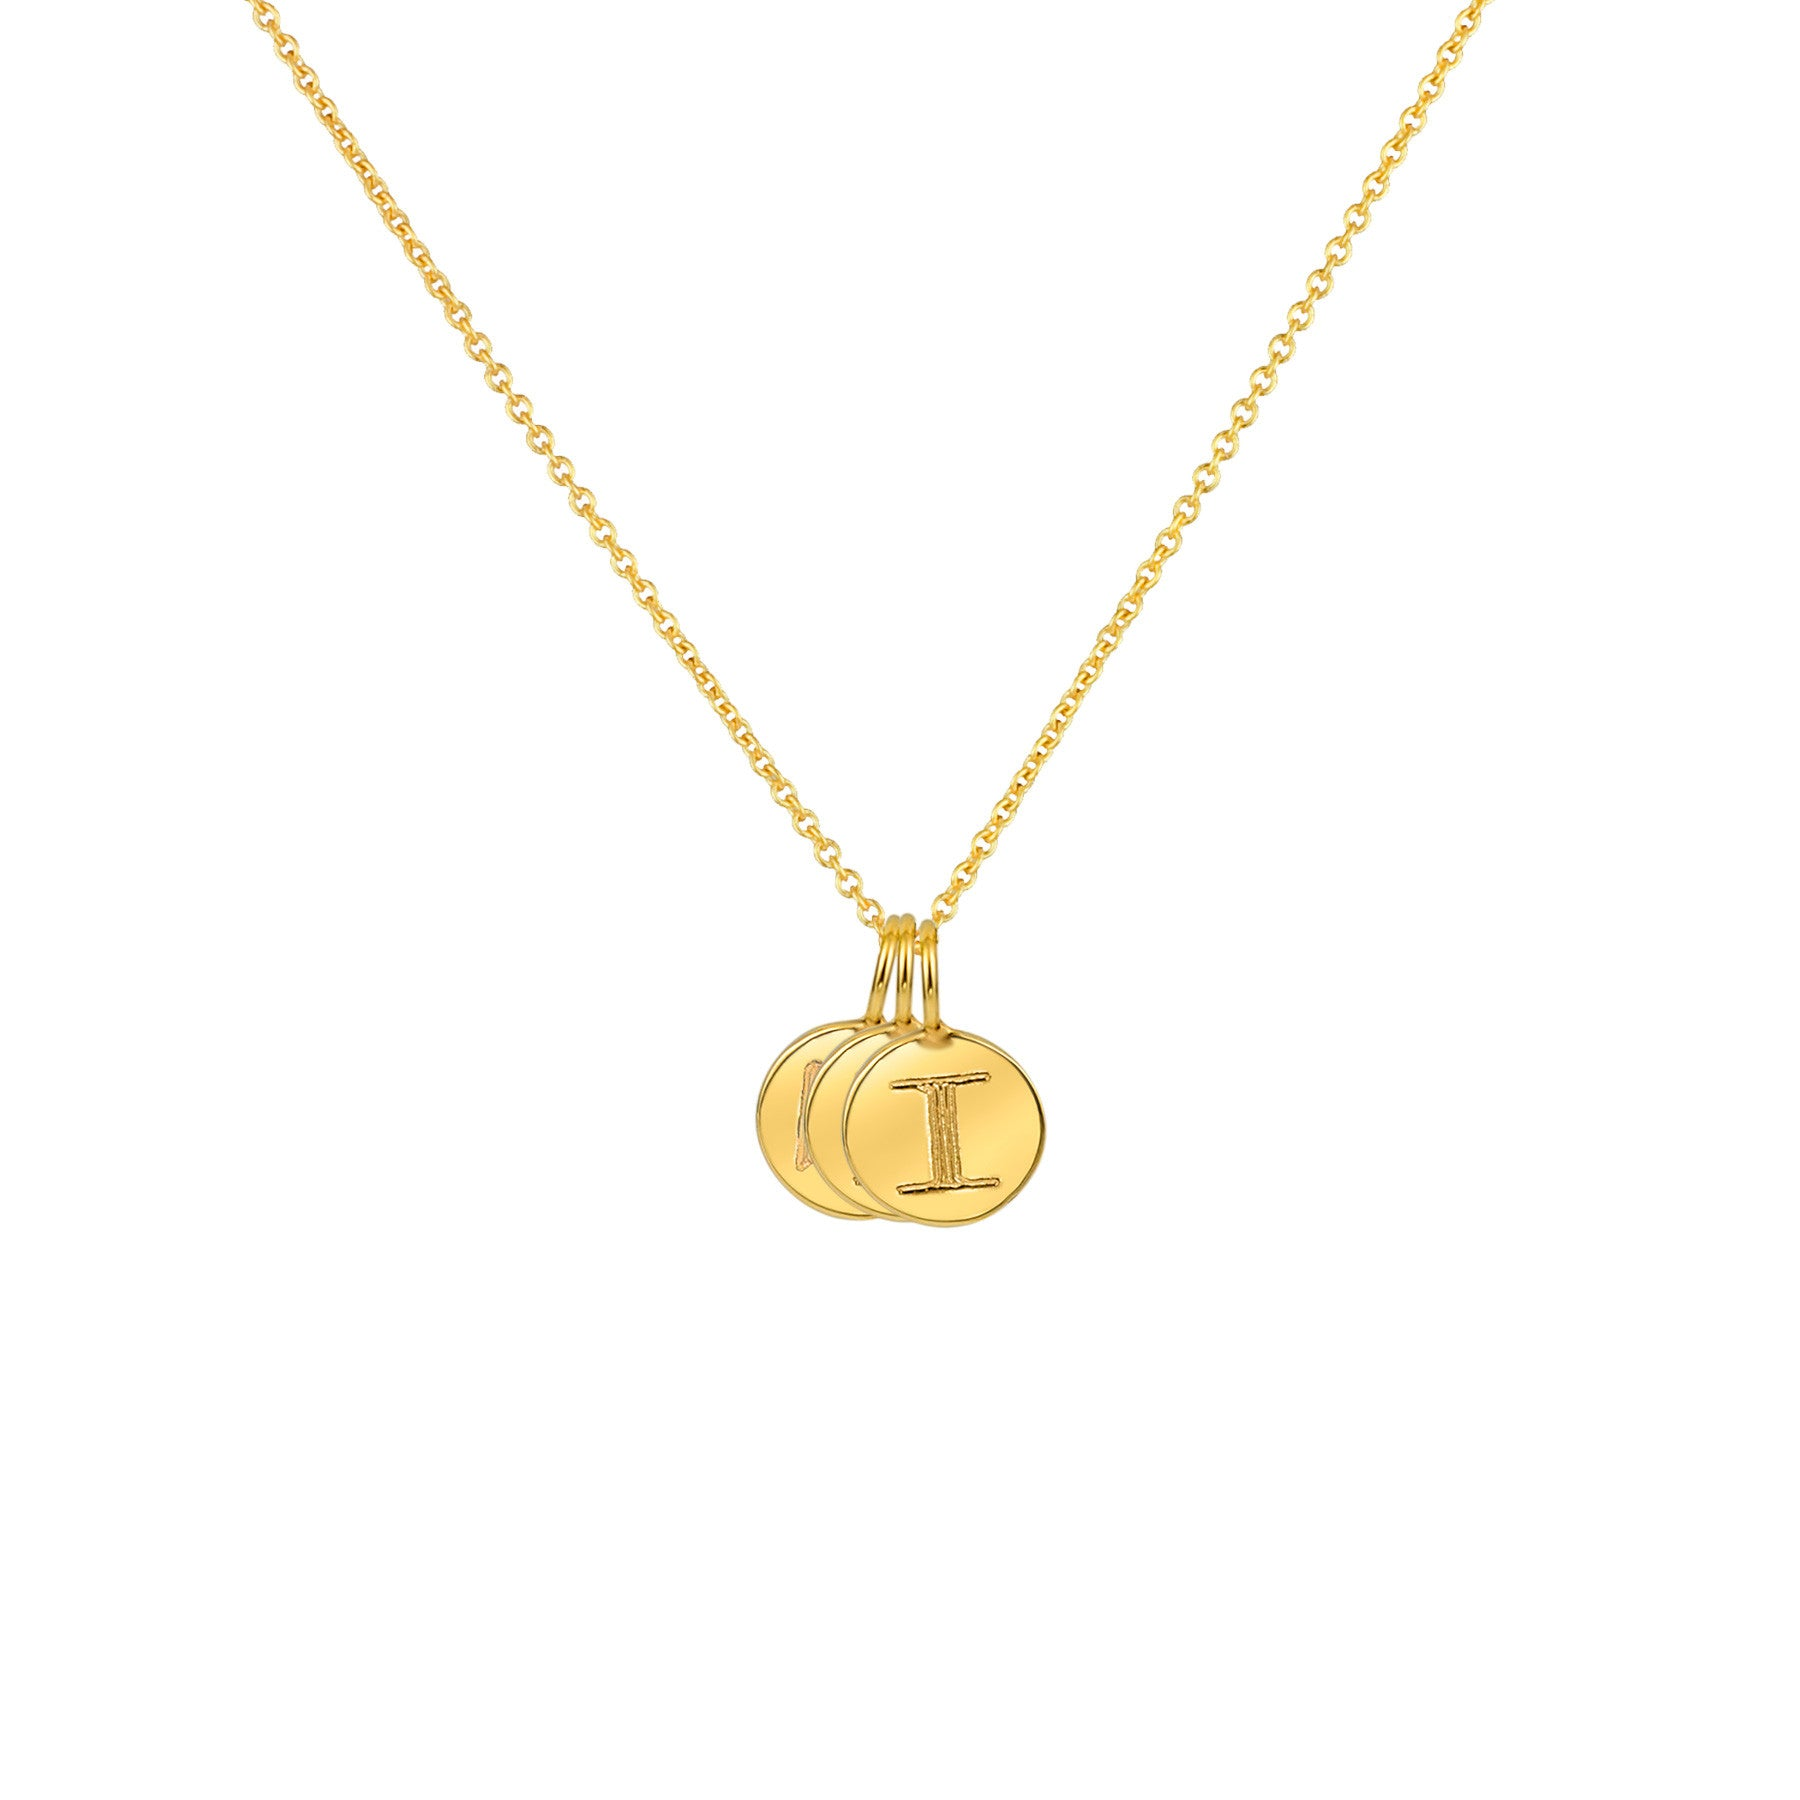 PETITE CIRCLE MULTIPLE CHARM NECKLACE 14K